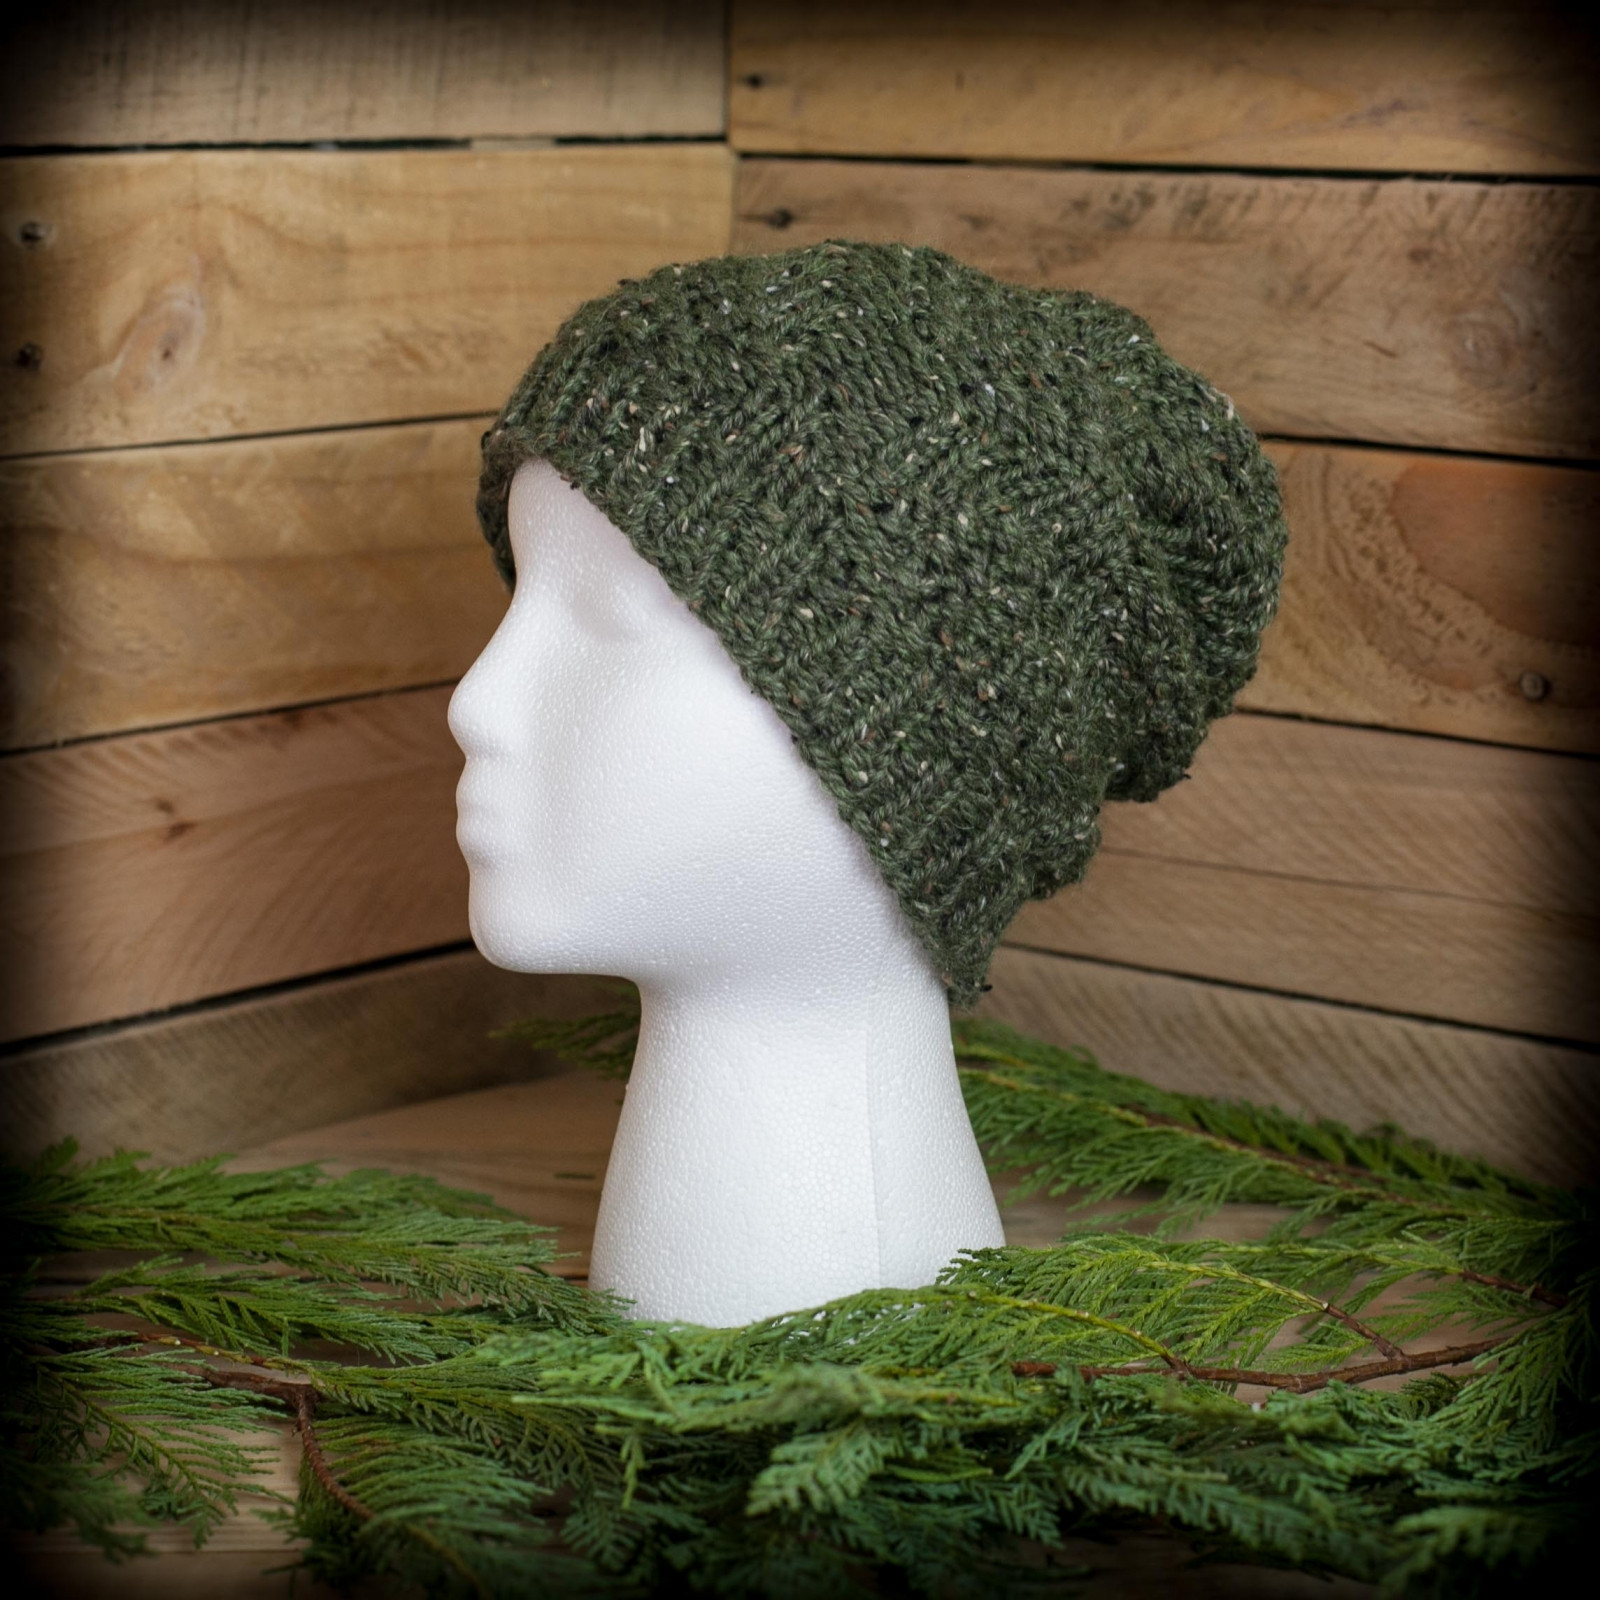 Hat Loom New Loom Knit Men S Hat Pattern Pinecone Stitch Ski Cap Of Amazing 48 Pictures Hat Loom